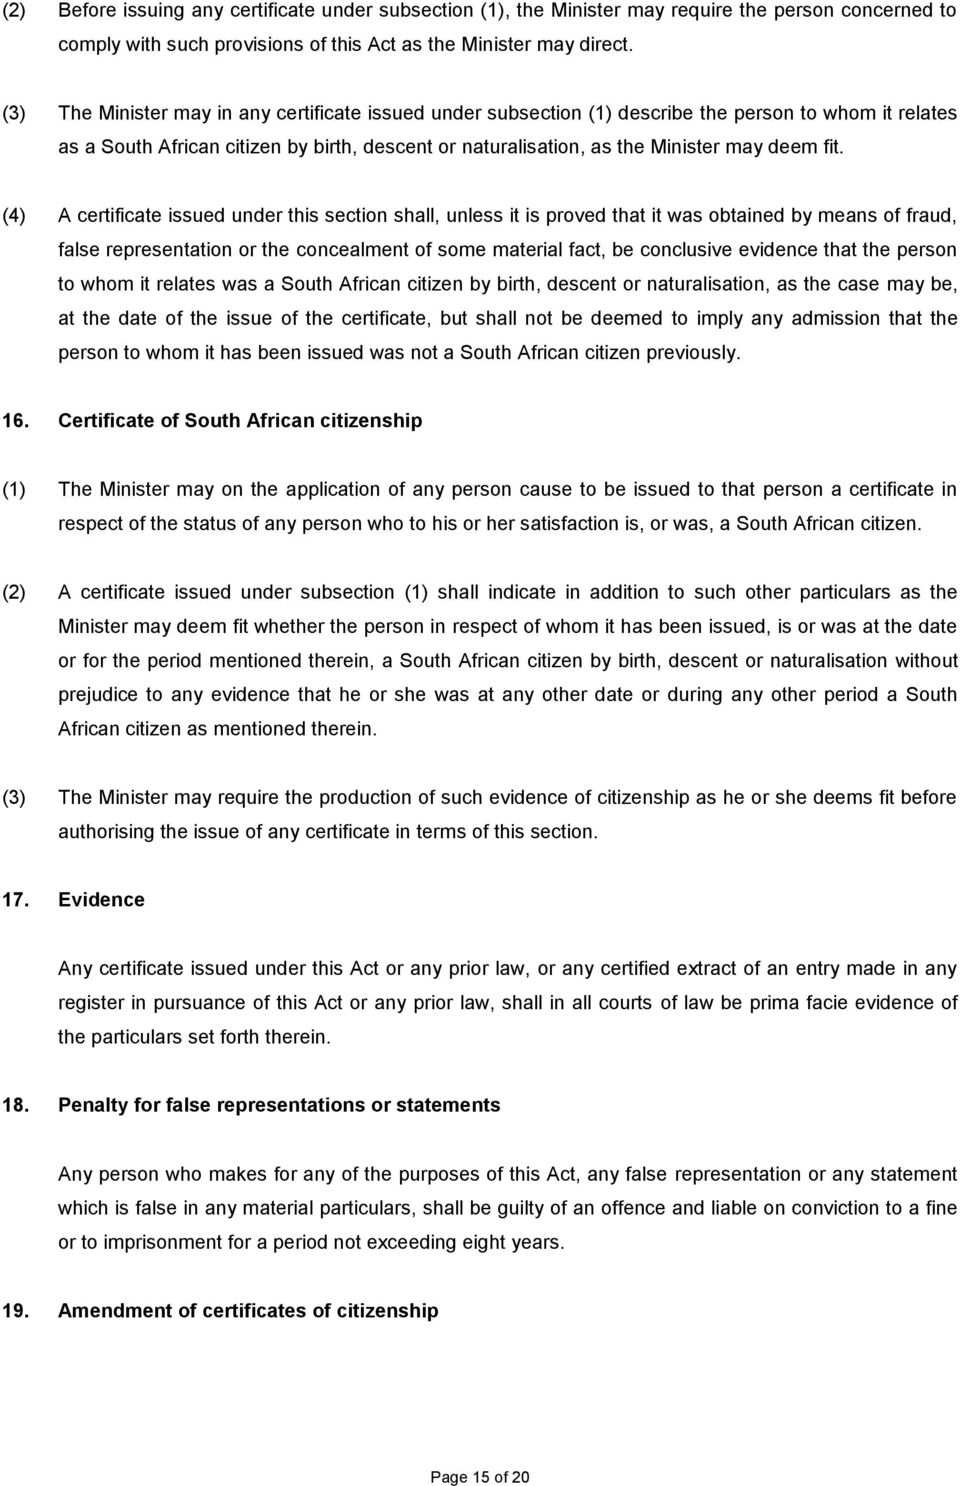 (4) A certificate issued under this section shall, unless it is proved that it was obtained by means of fraud, false representation or the concealment of some material fact, be conclusive evidence